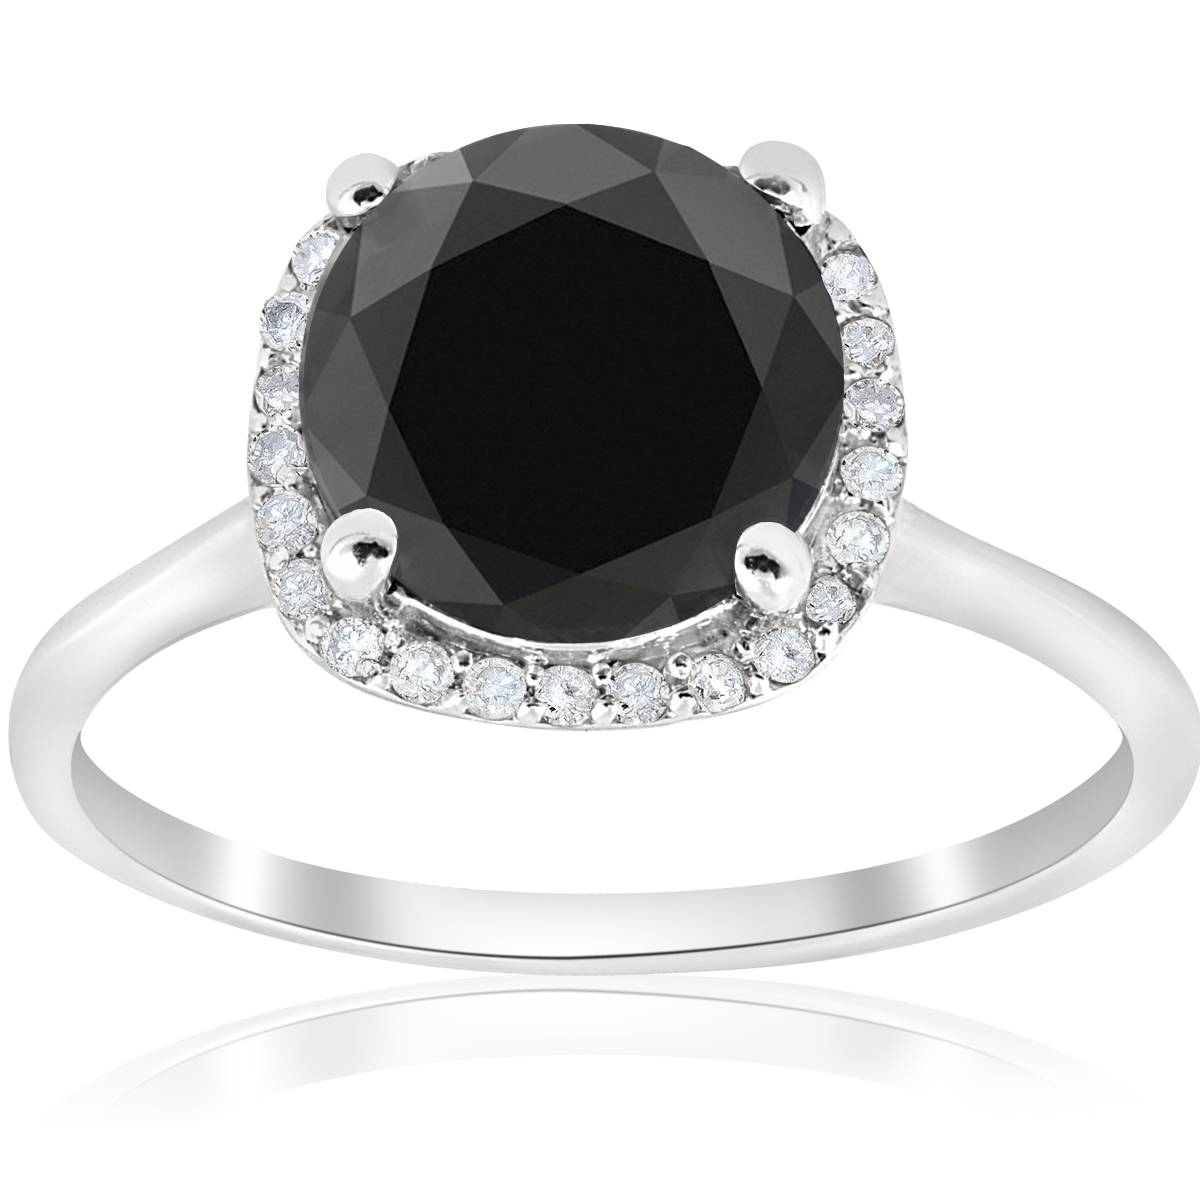 3 1/10ct Treated Black Diamond Cushion Halo Engagement ...